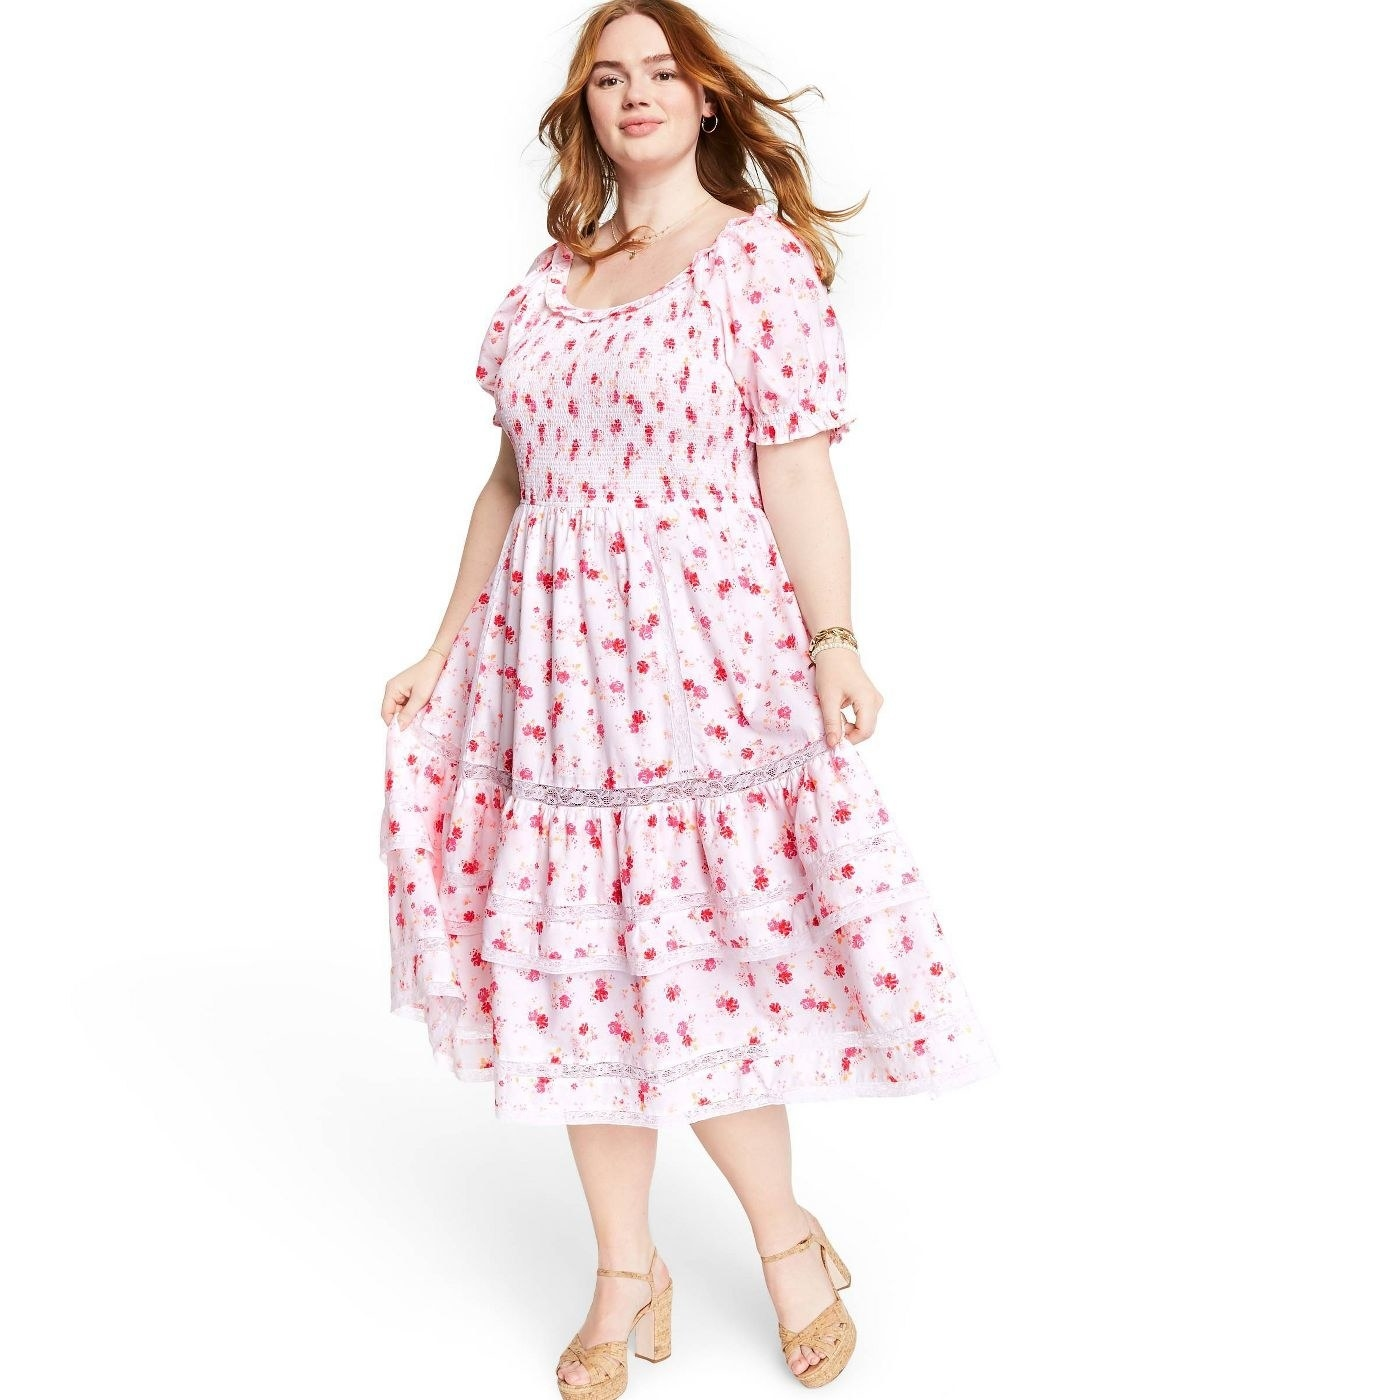 A model in a tiered white midi dress with pink florals